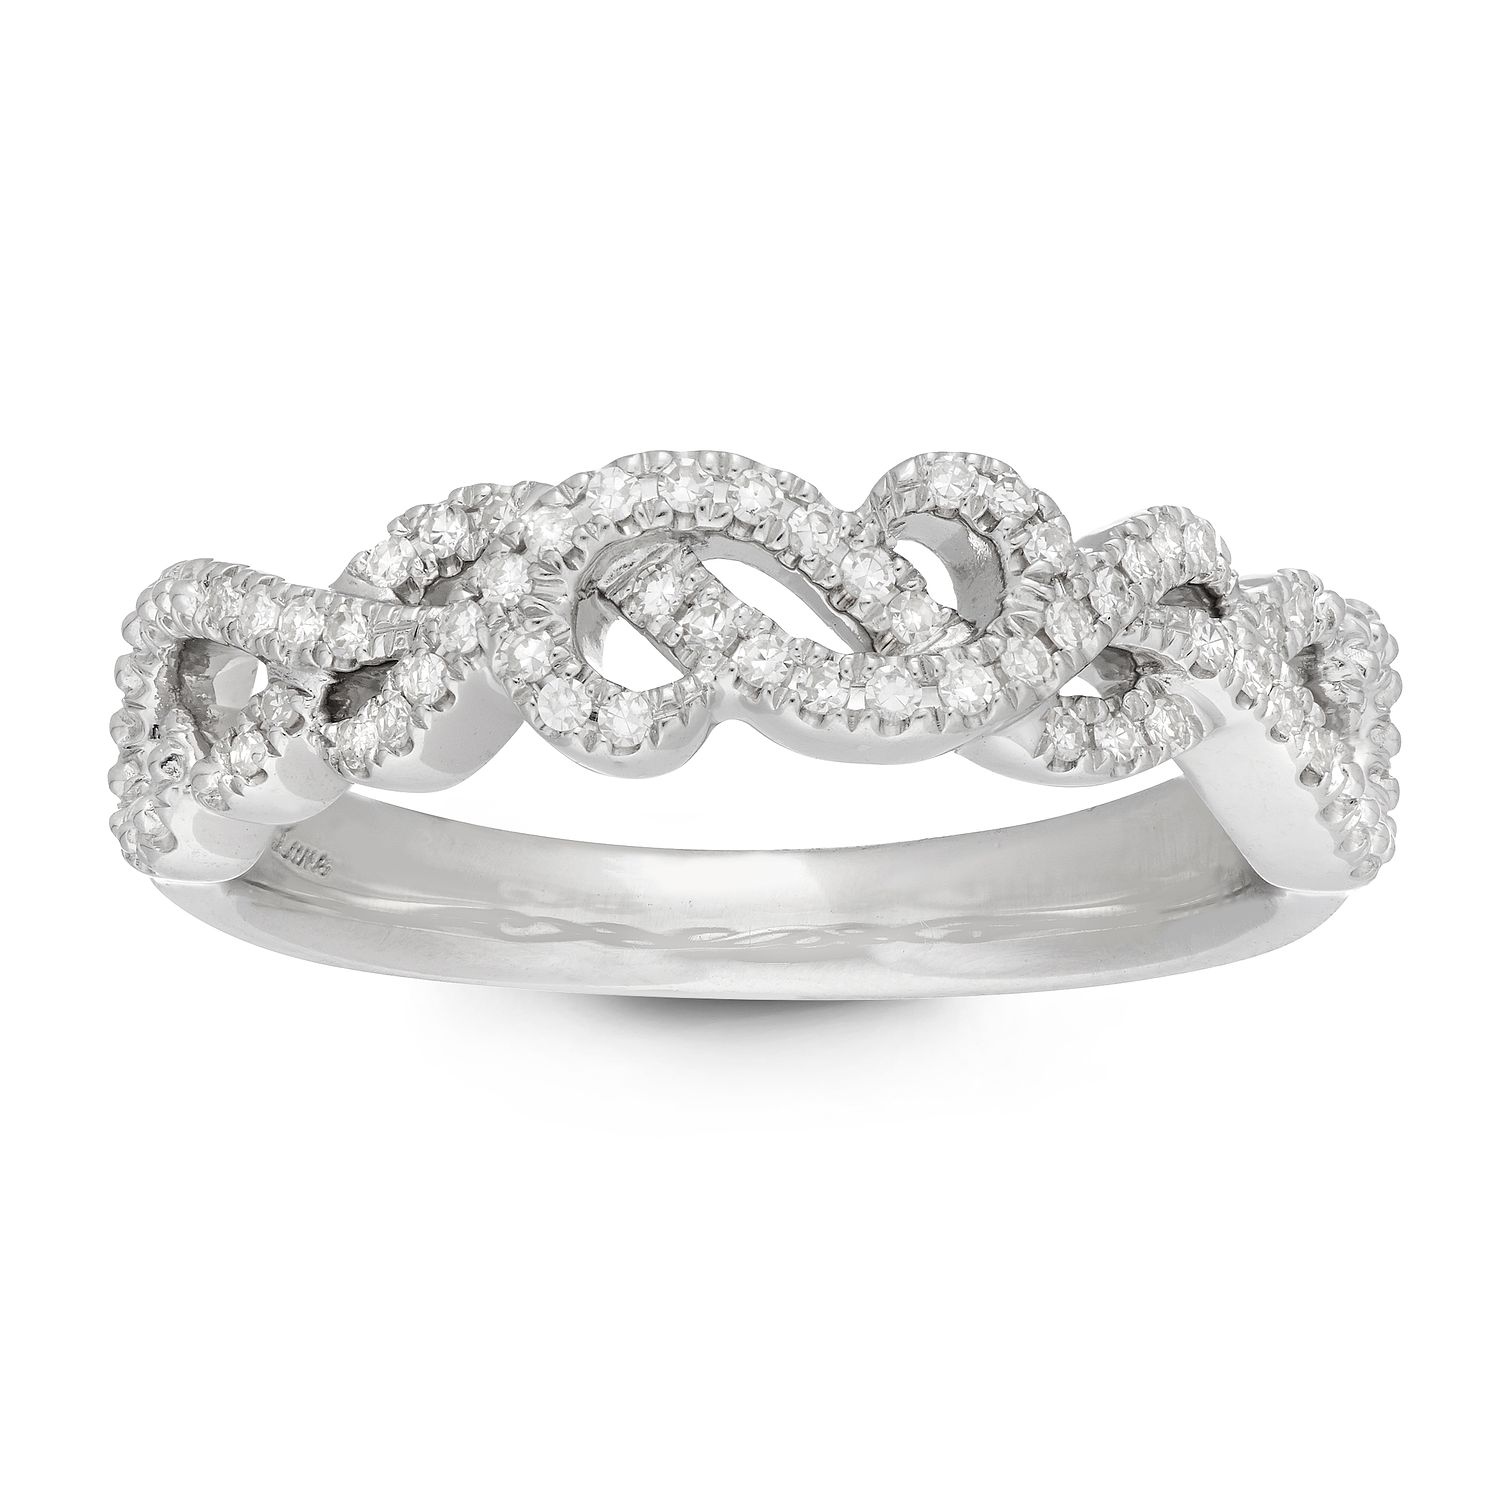 Neil Lane Designs Silver 0.15ct Diamond Twist Ring - Product number 4623045